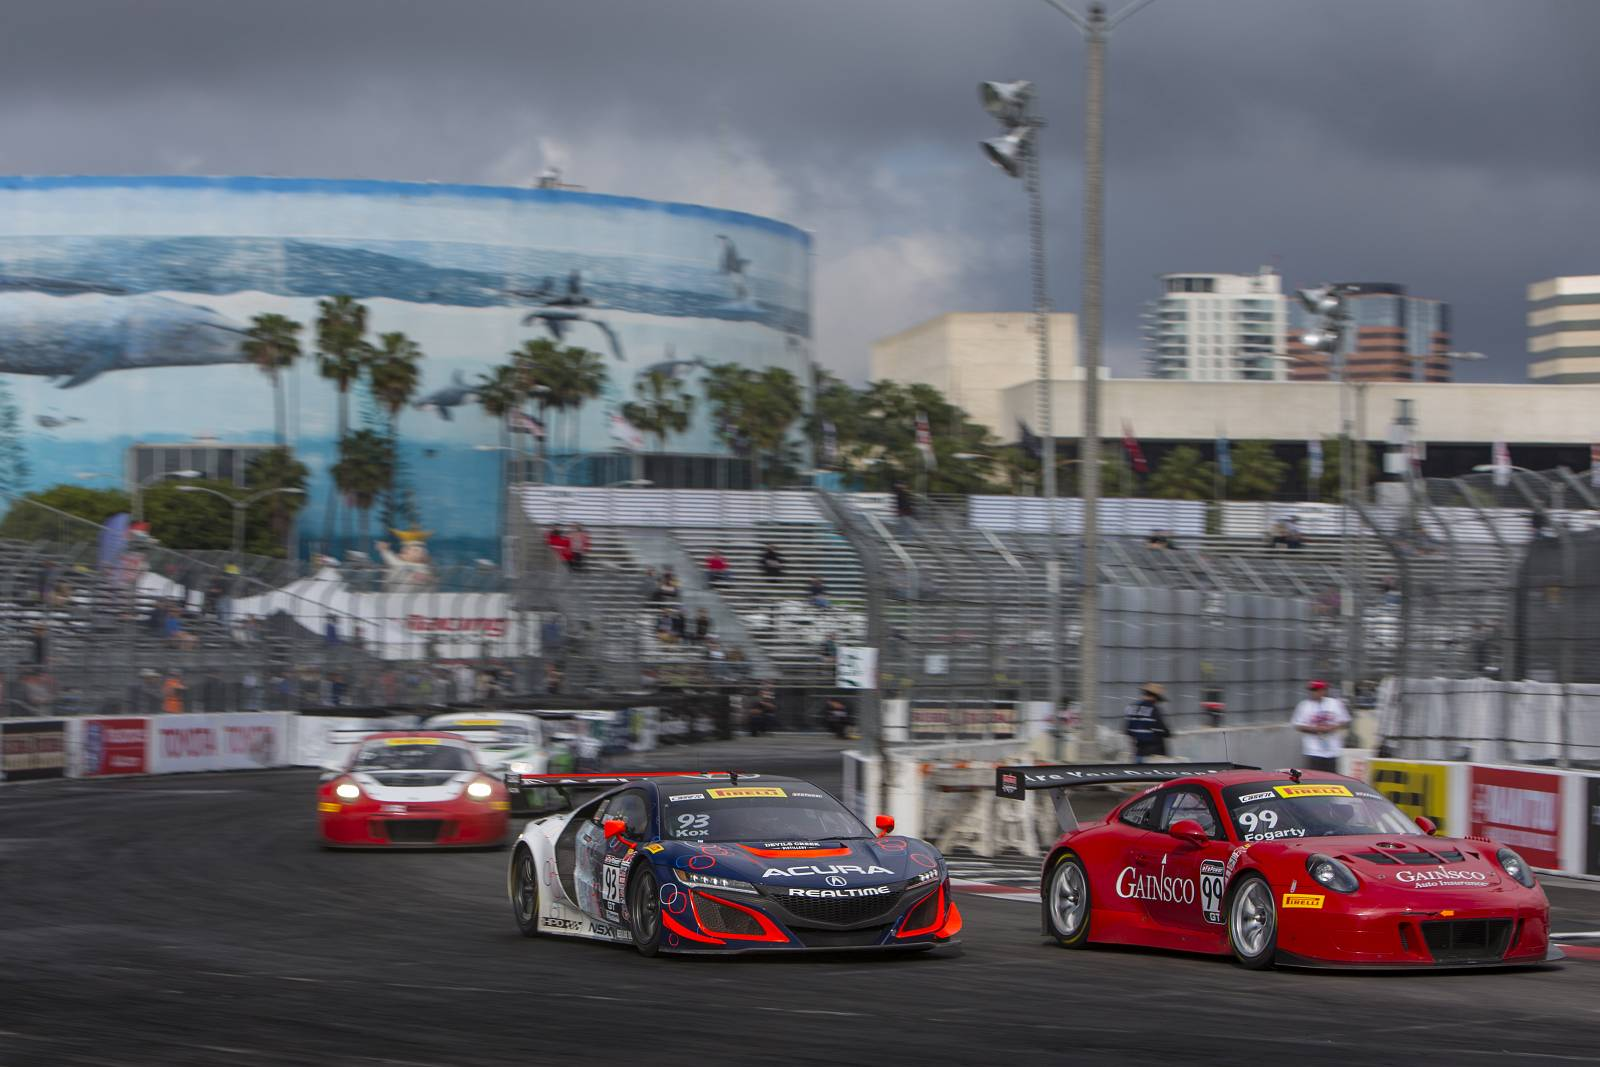 peter-kox-pirelli-world-challenge-2017-long-beach-60